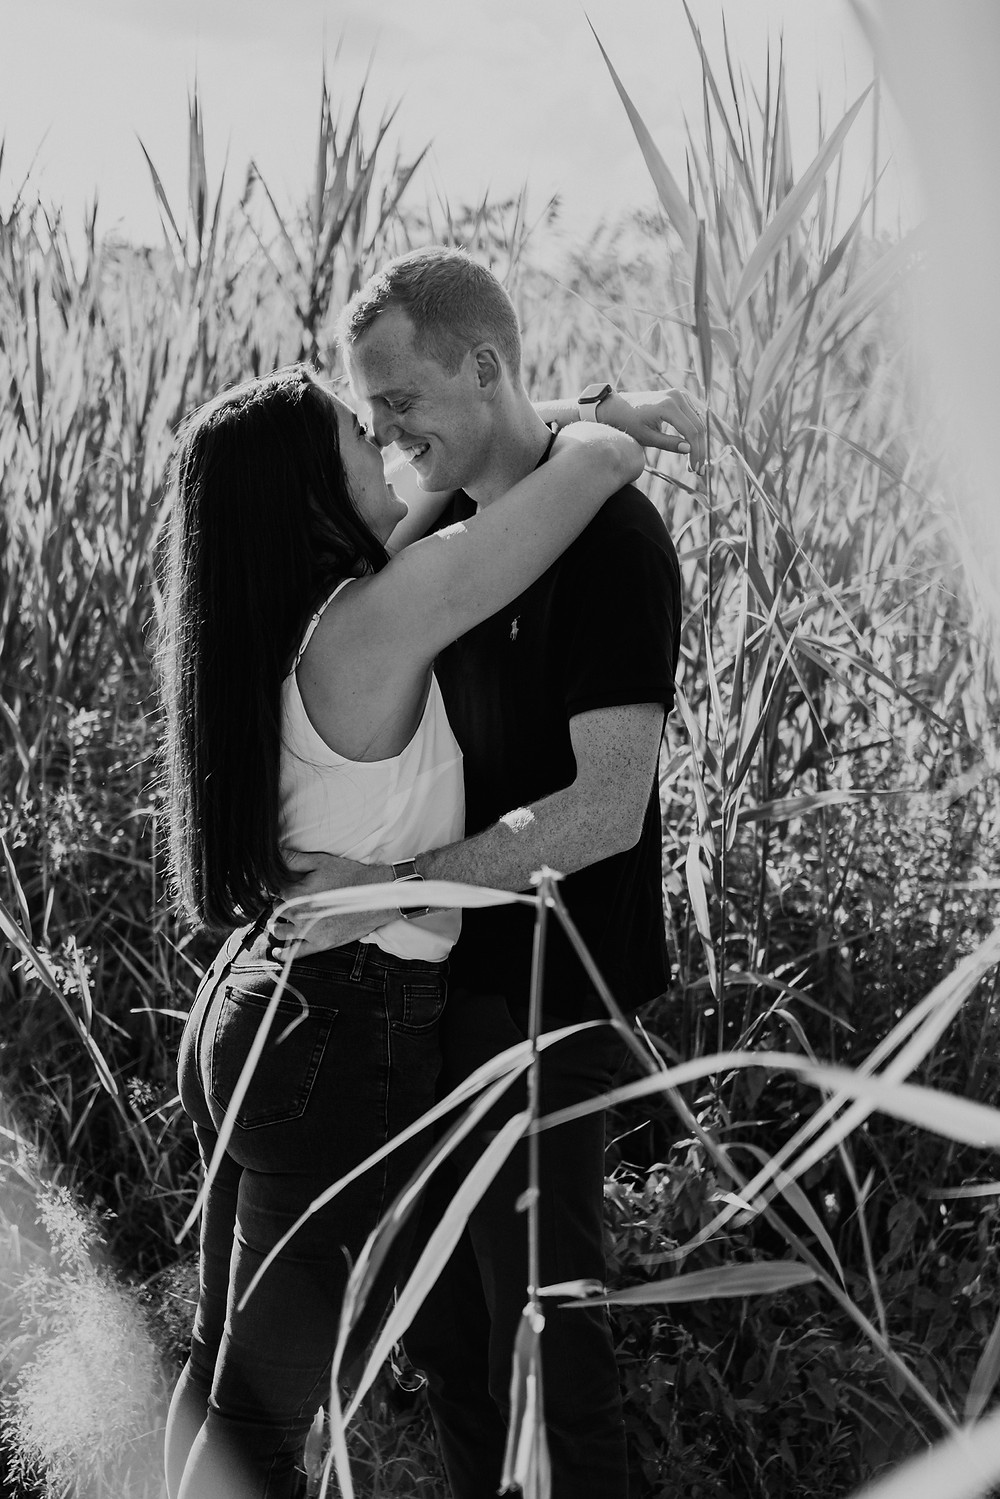 Couple posing for engagement photos in wooded field. Photographed by Nicole Leanne Photography